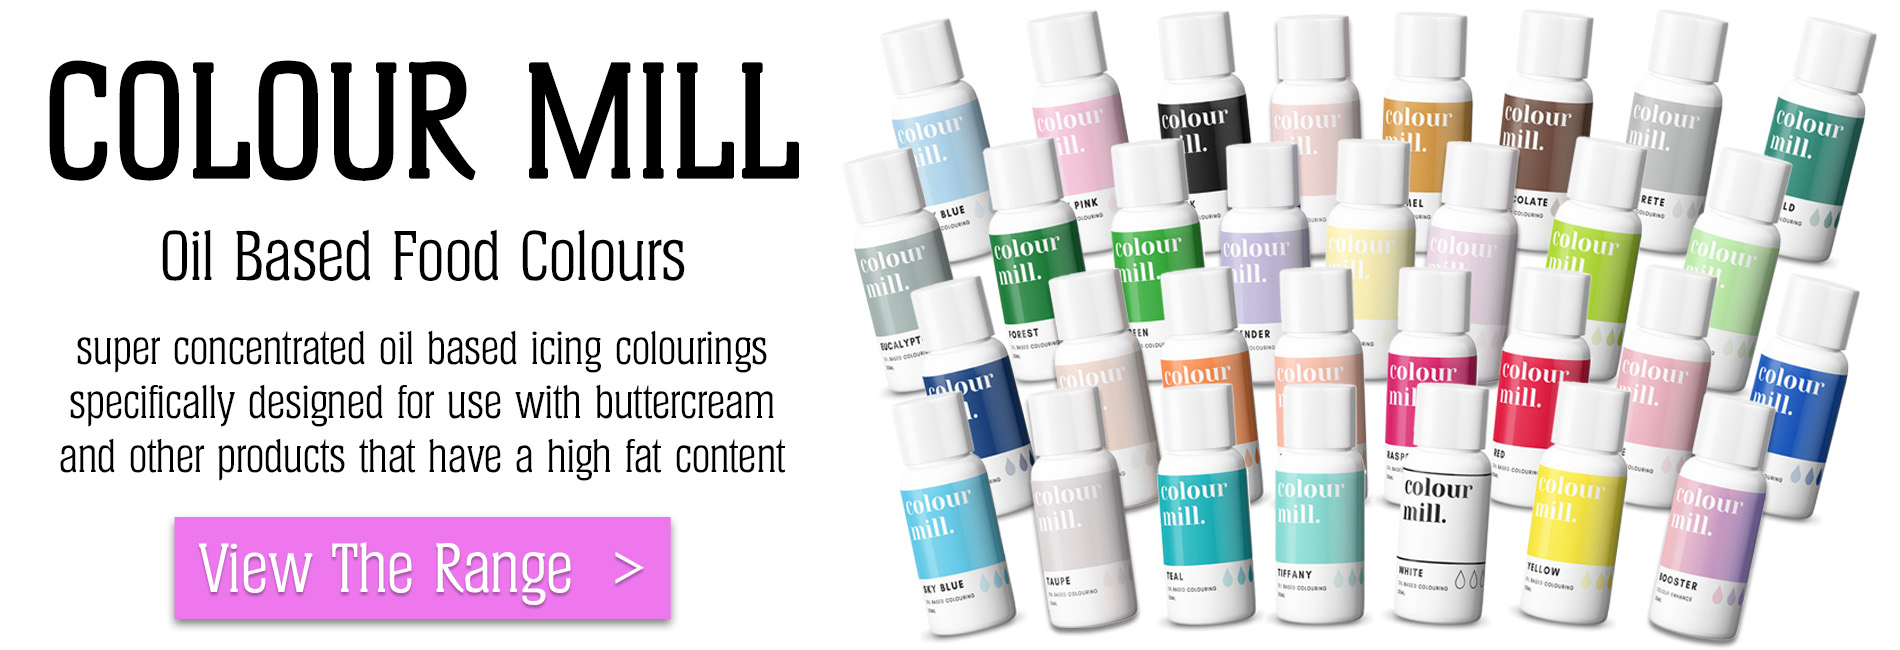 Colour Mill Oil Based Concentrated Icing Colouring